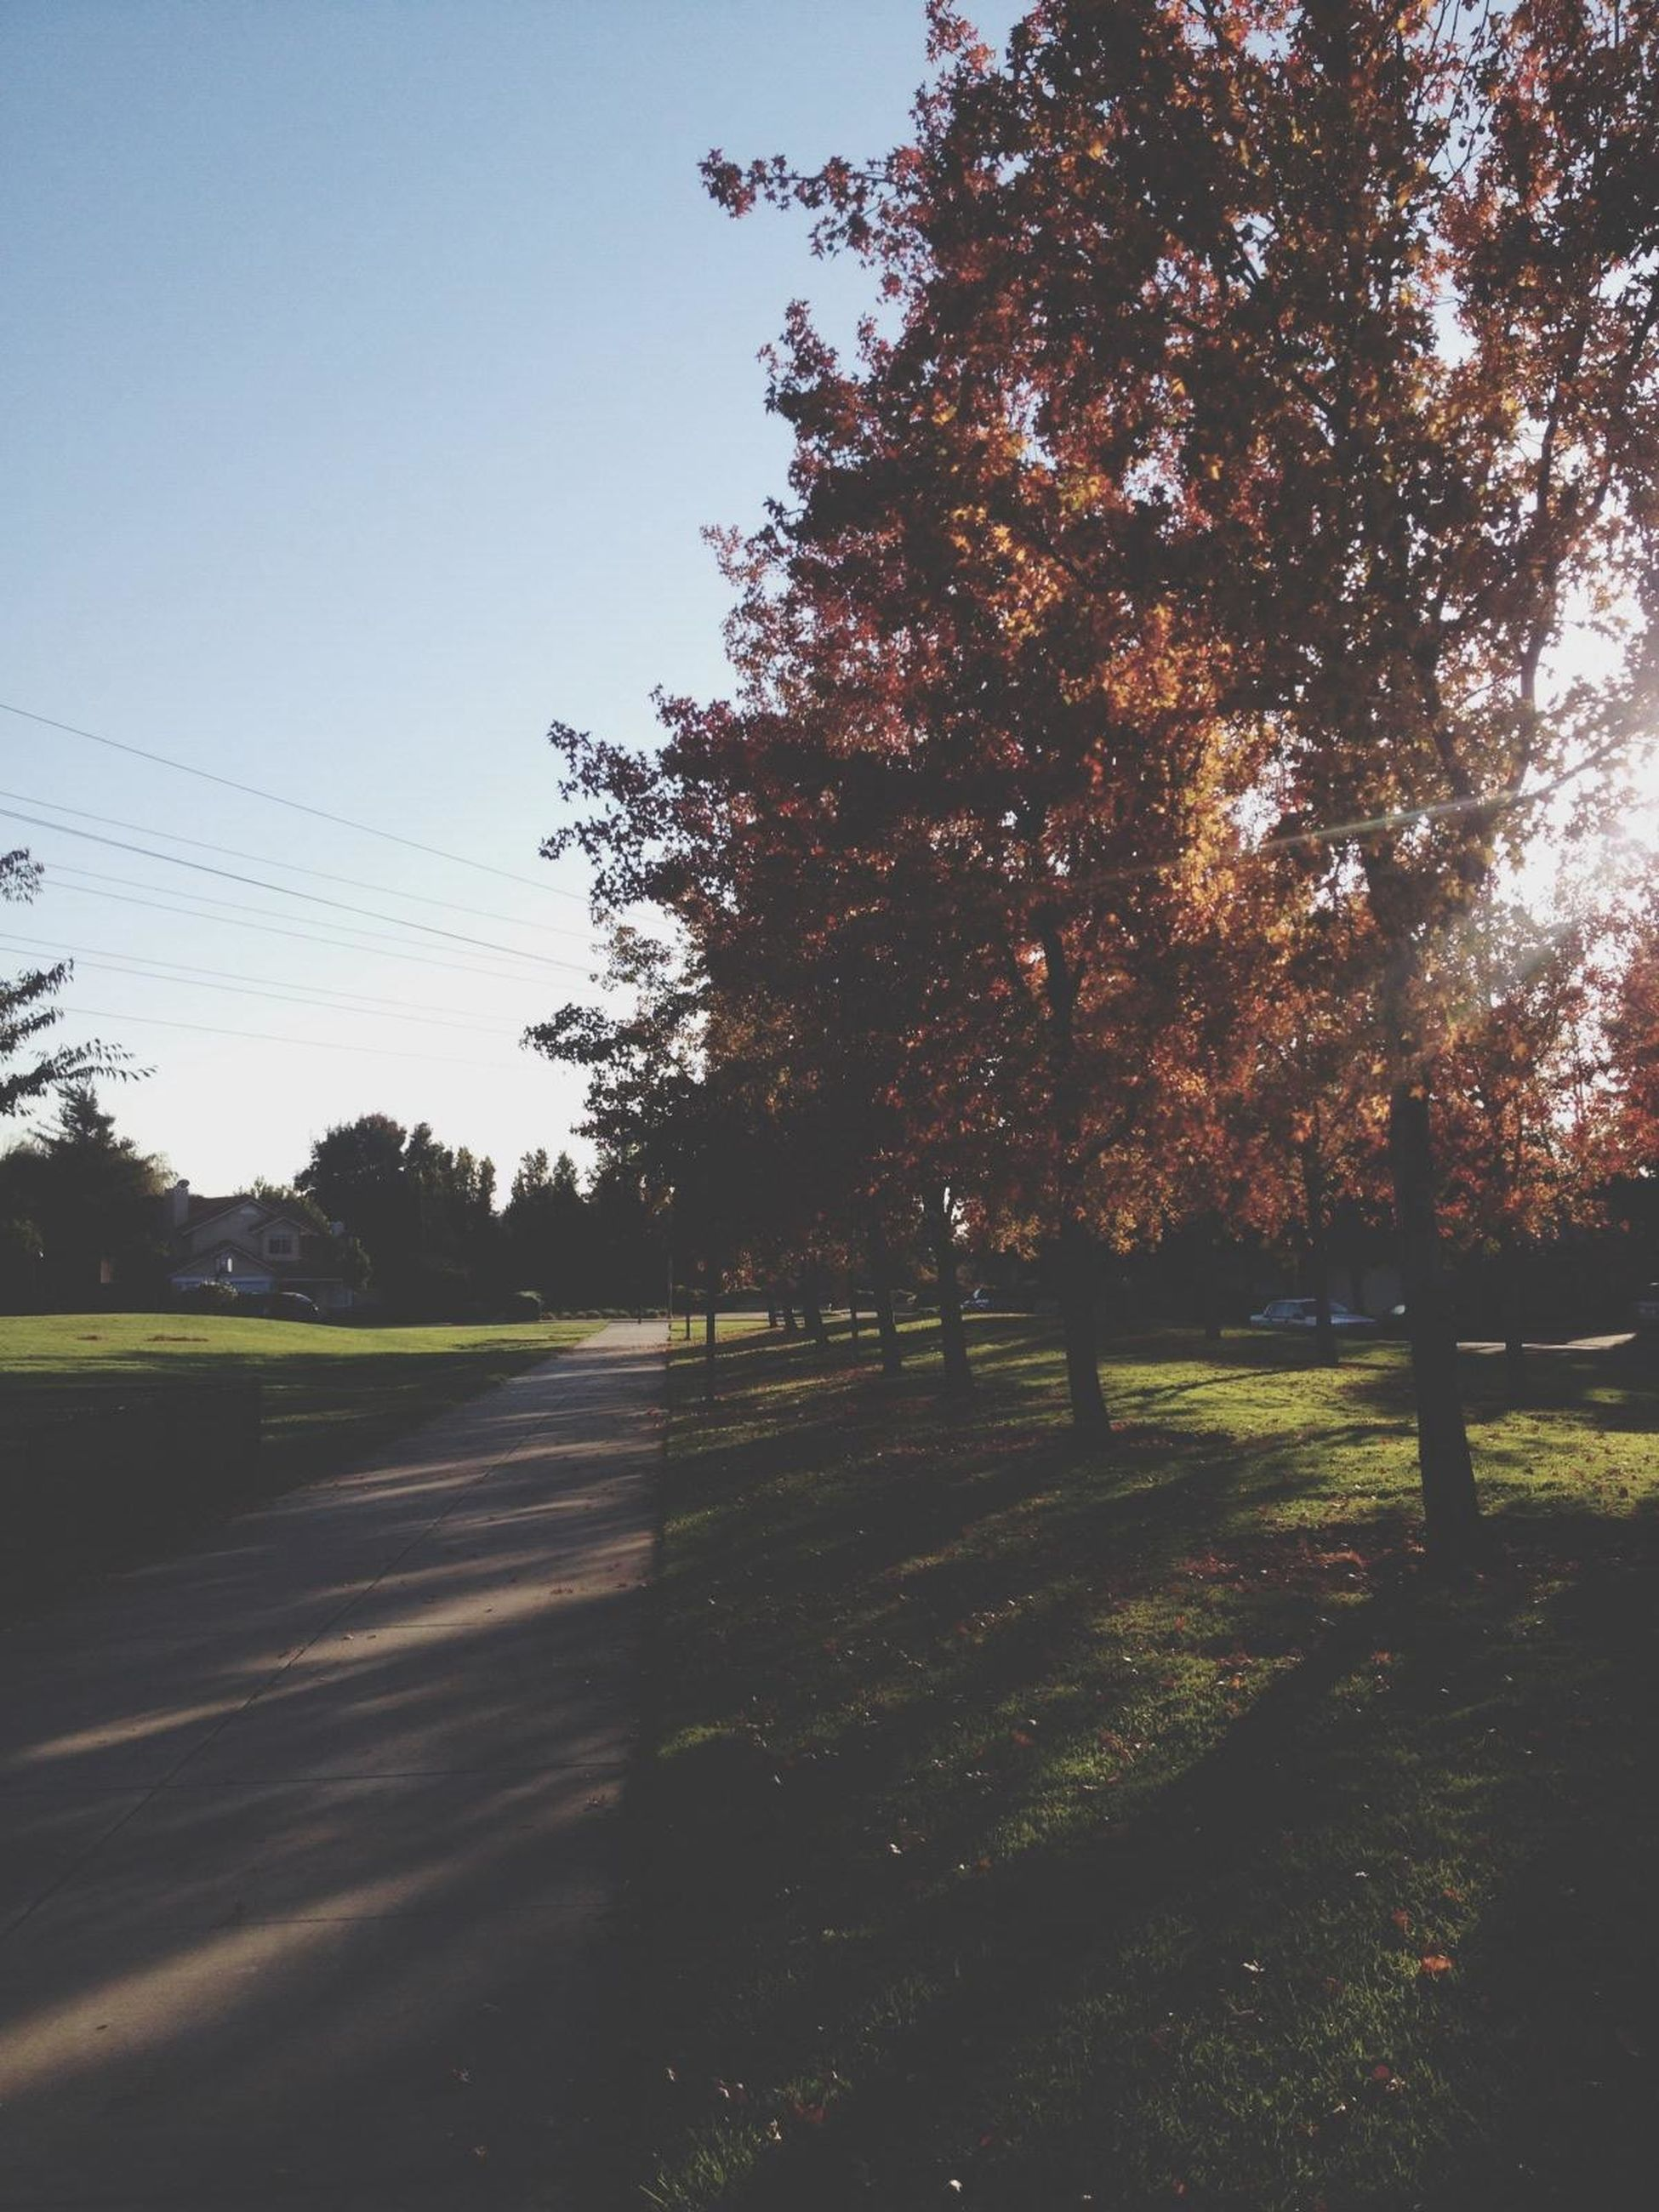 tree, clear sky, tranquility, road, landscape, tranquil scene, field, transportation, nature, sunlight, growth, beauty in nature, scenics, shadow, street, sky, the way forward, outdoors, grass, no people